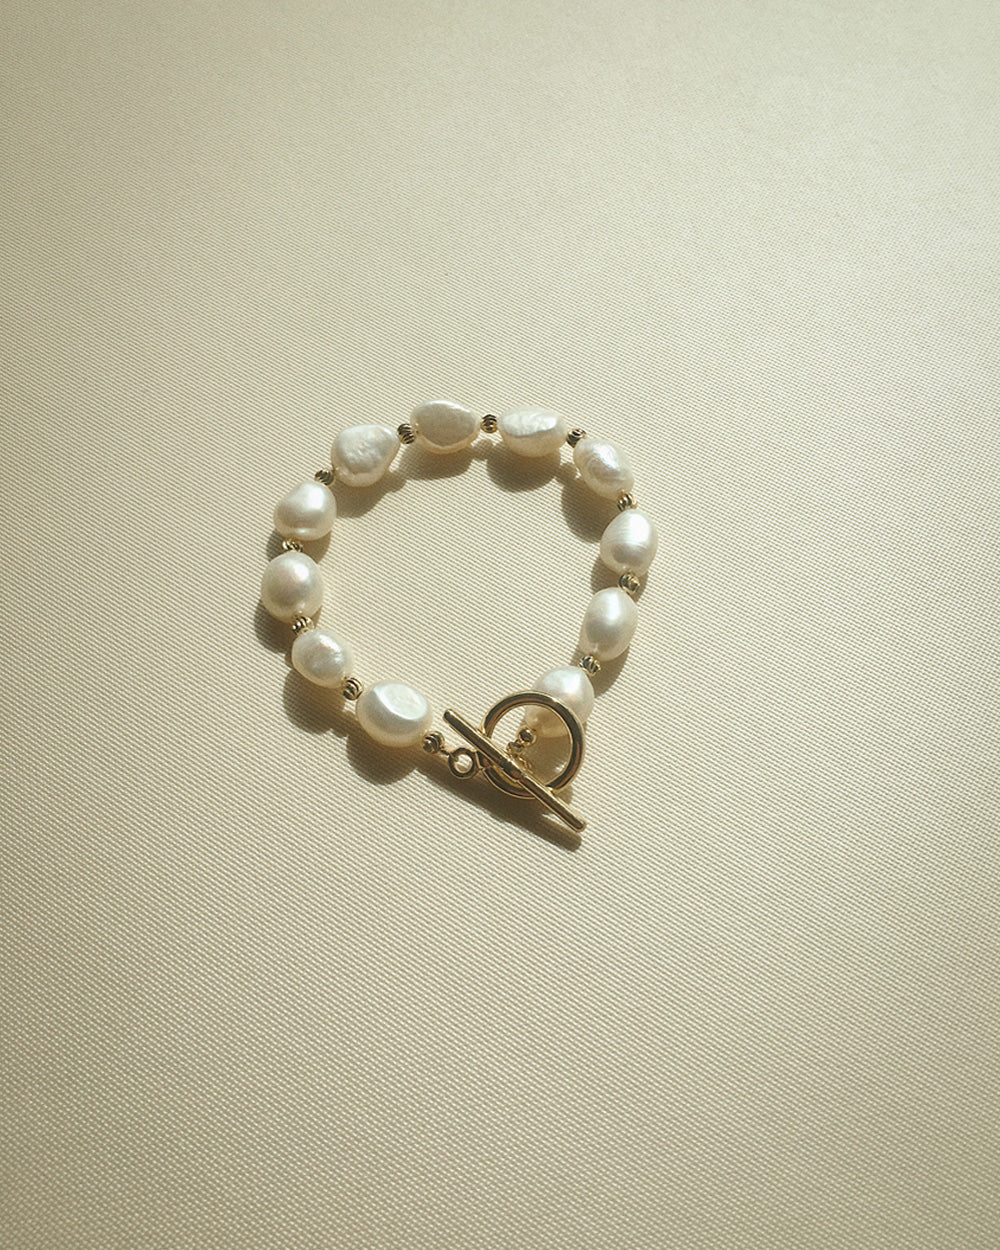 freshwater pearl bracelet with modern toggle clasp closure @thehexad